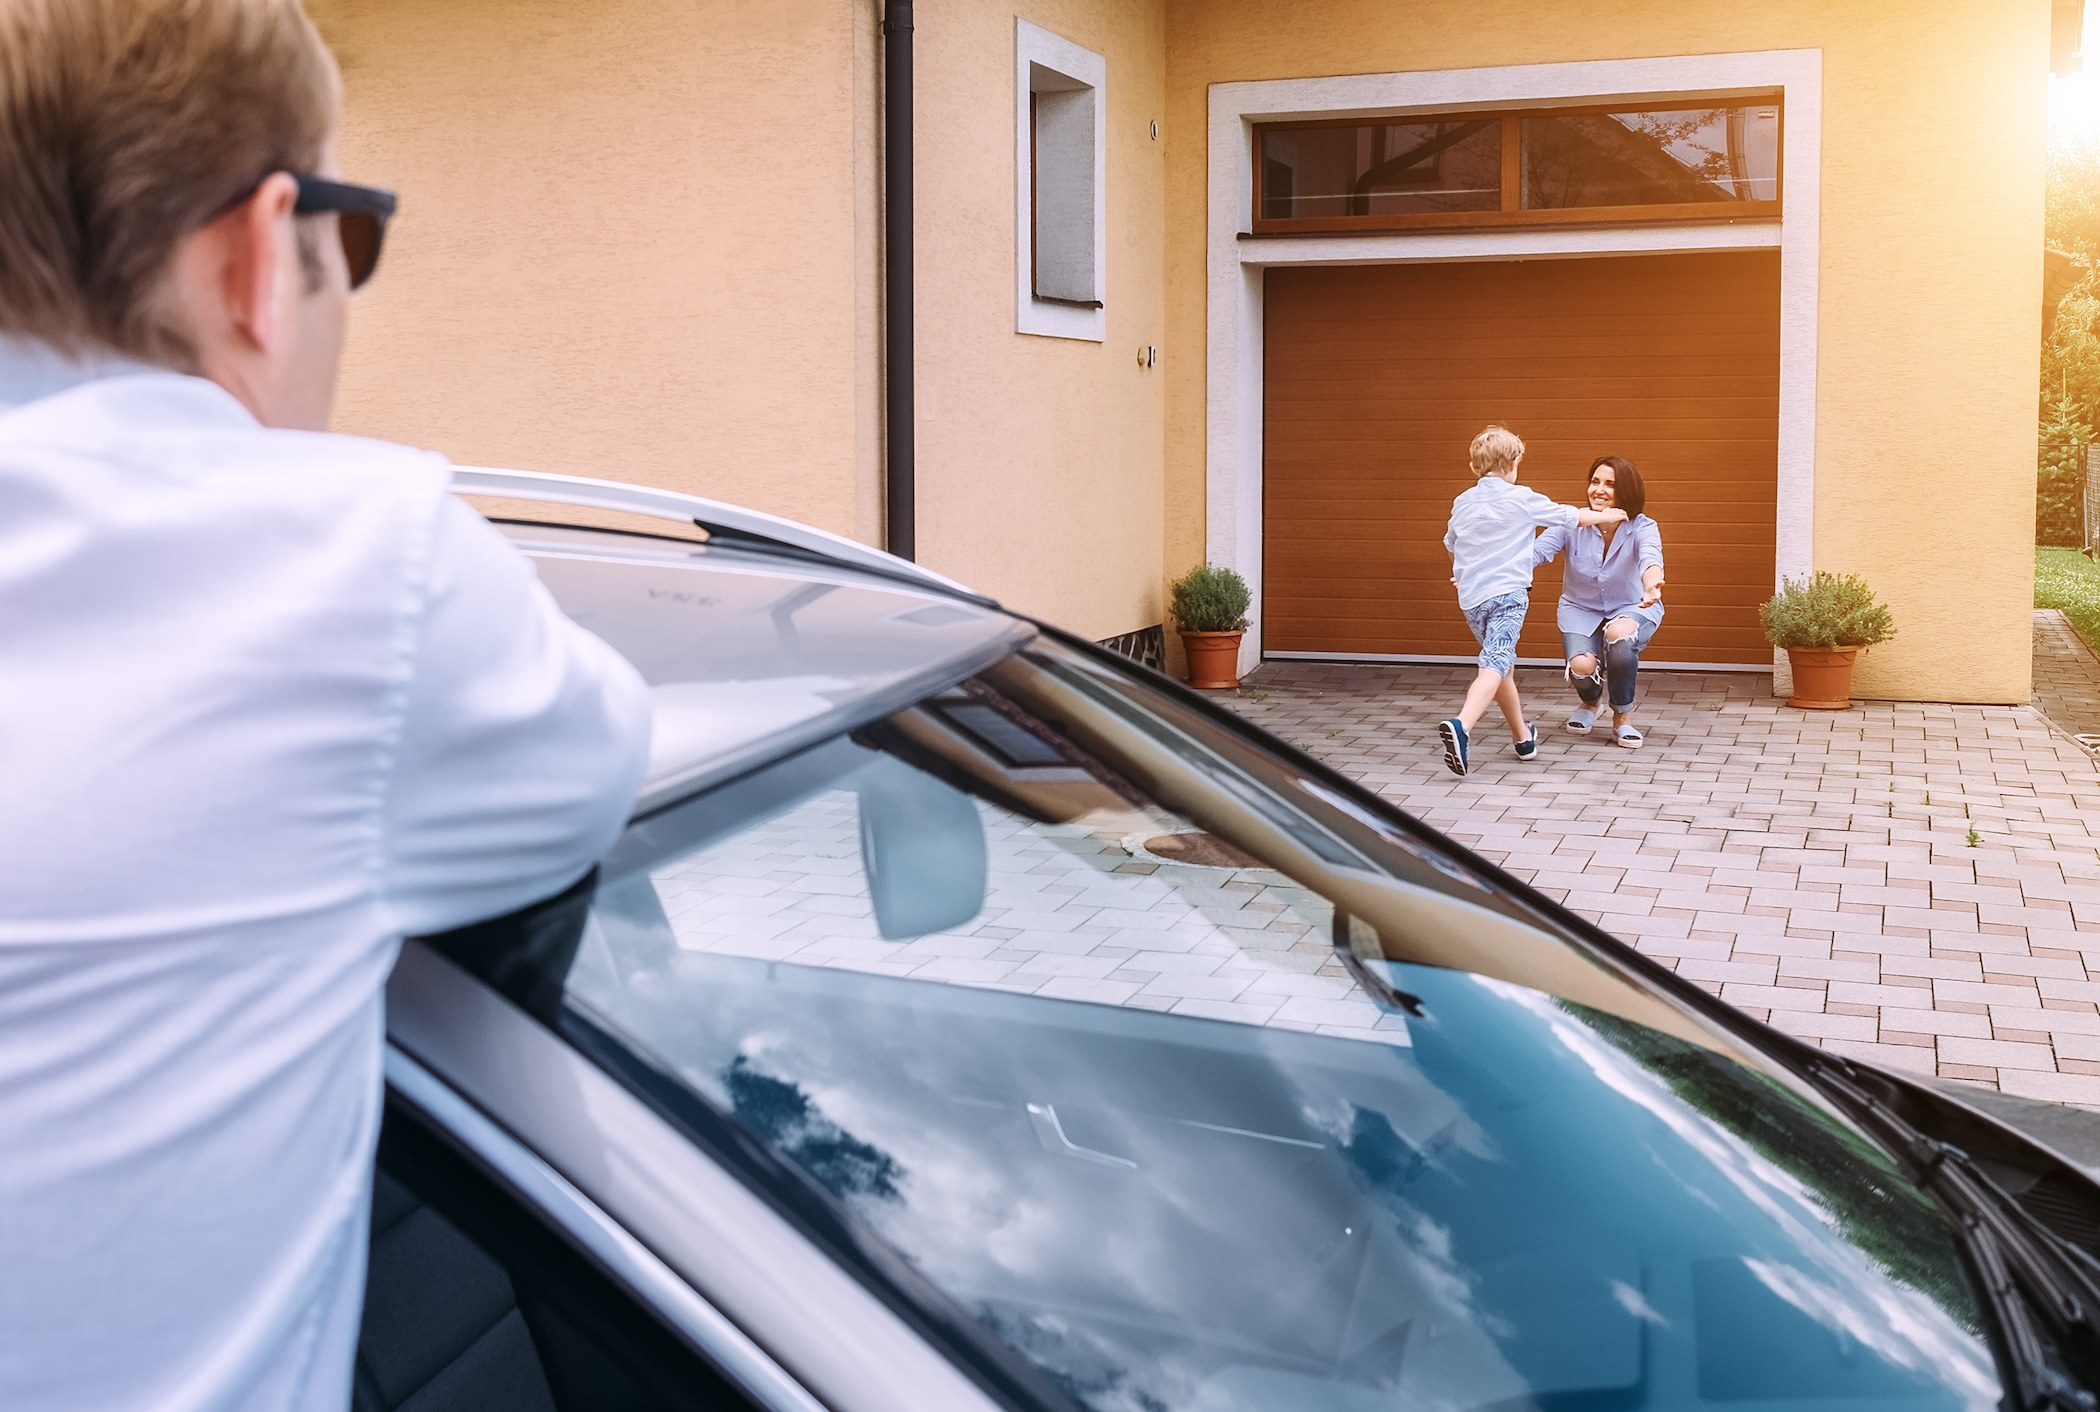 A son runs to his mother while father waits at the car.